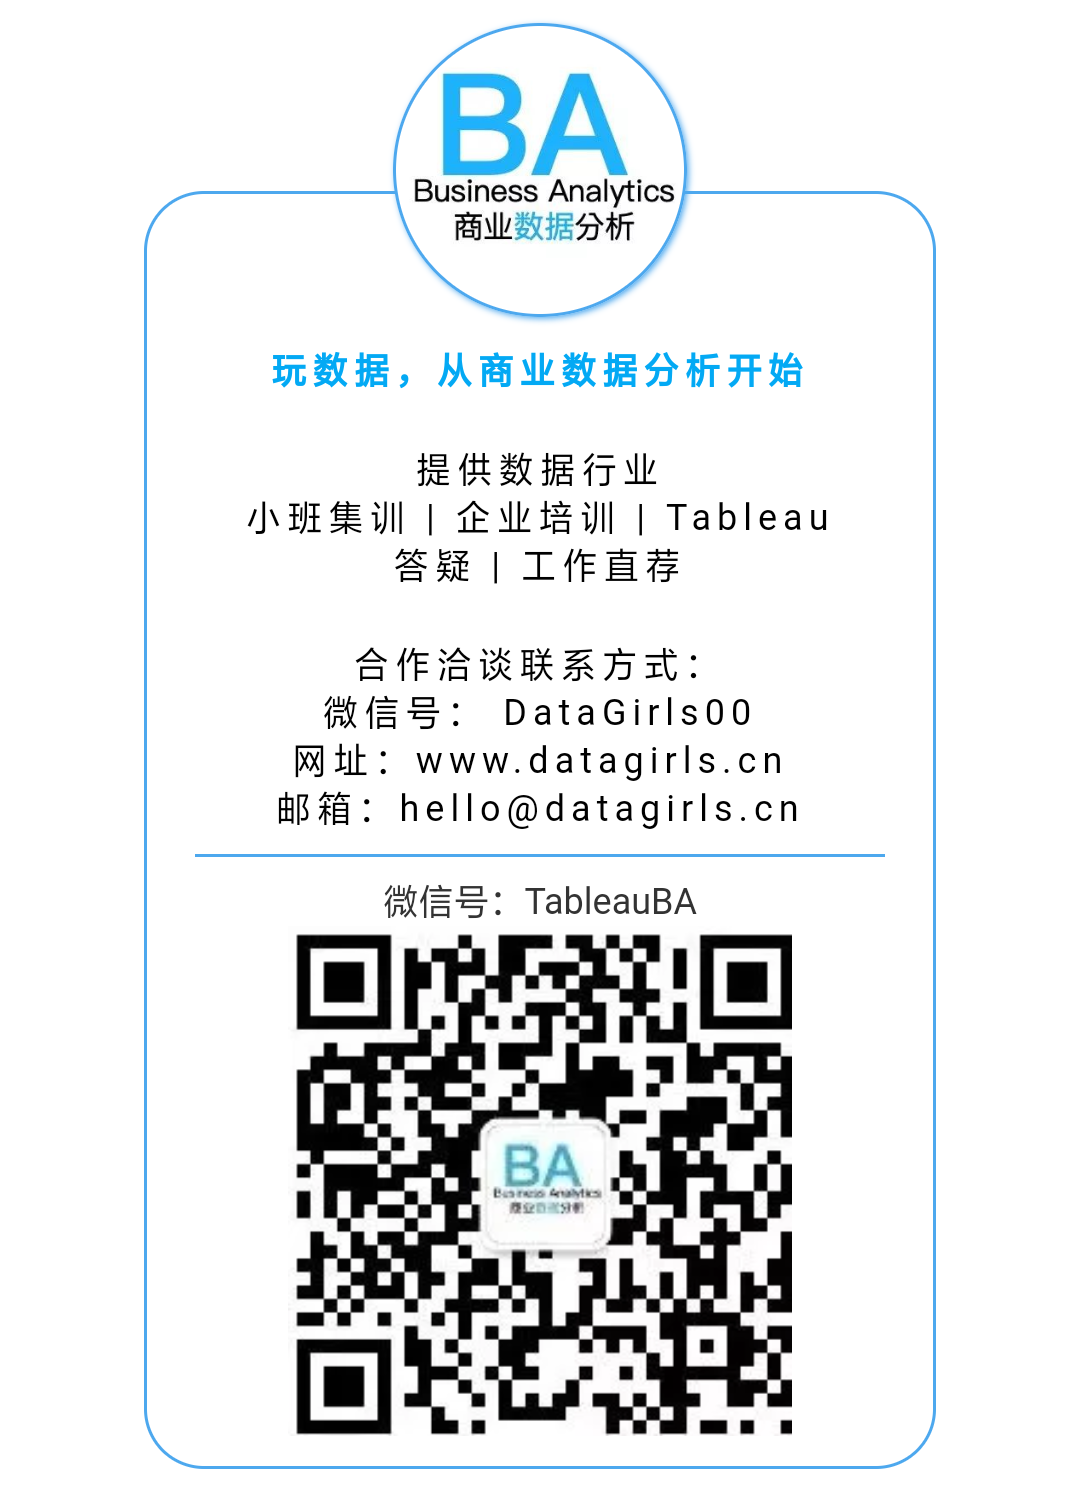 http://www.huodongxing.com/file/20170905/1692804578949/403296002526748.png